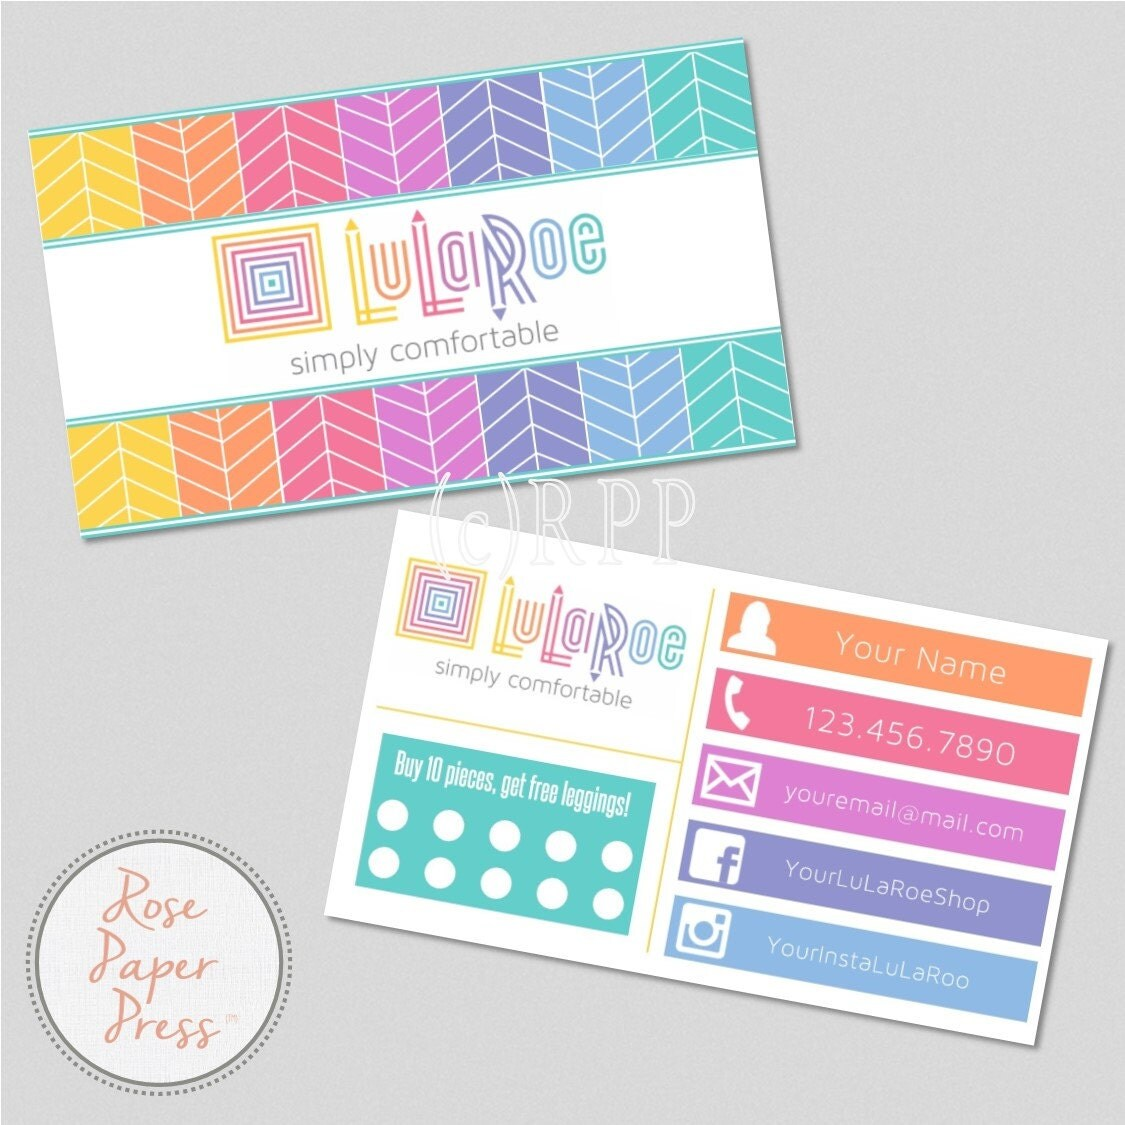 Lularoe business cards herringbone by rosepaperpress on etsy for Etsy lularoe business cards